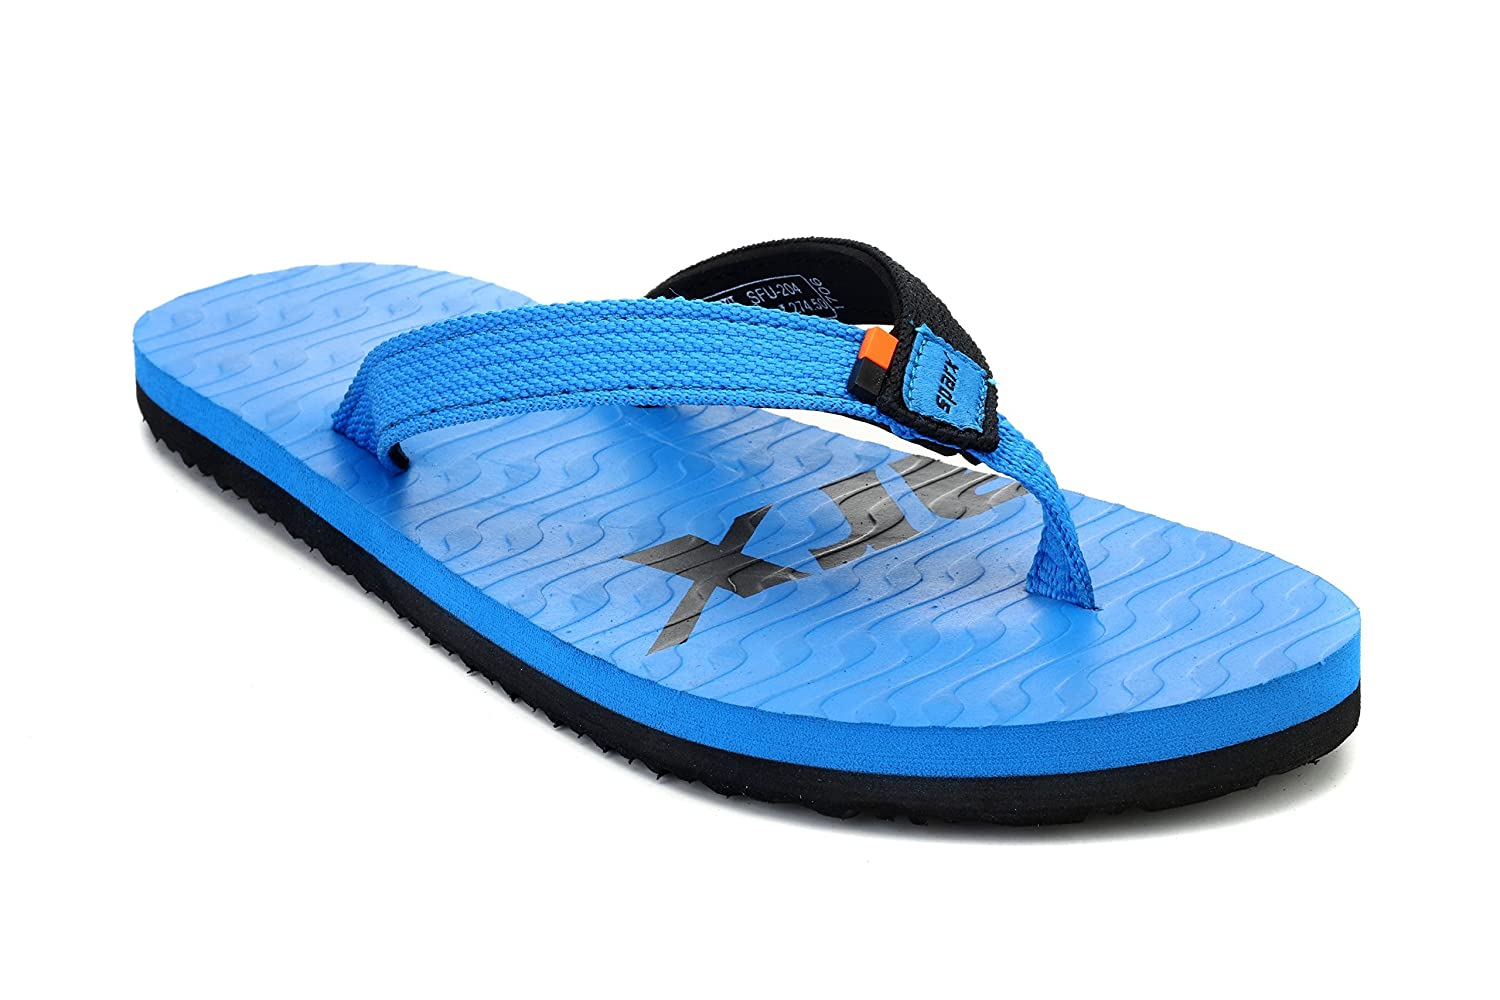 98a35abb3eb7b9 Flip Flops  Buy Slippers online at best prices in India - Amazon.in